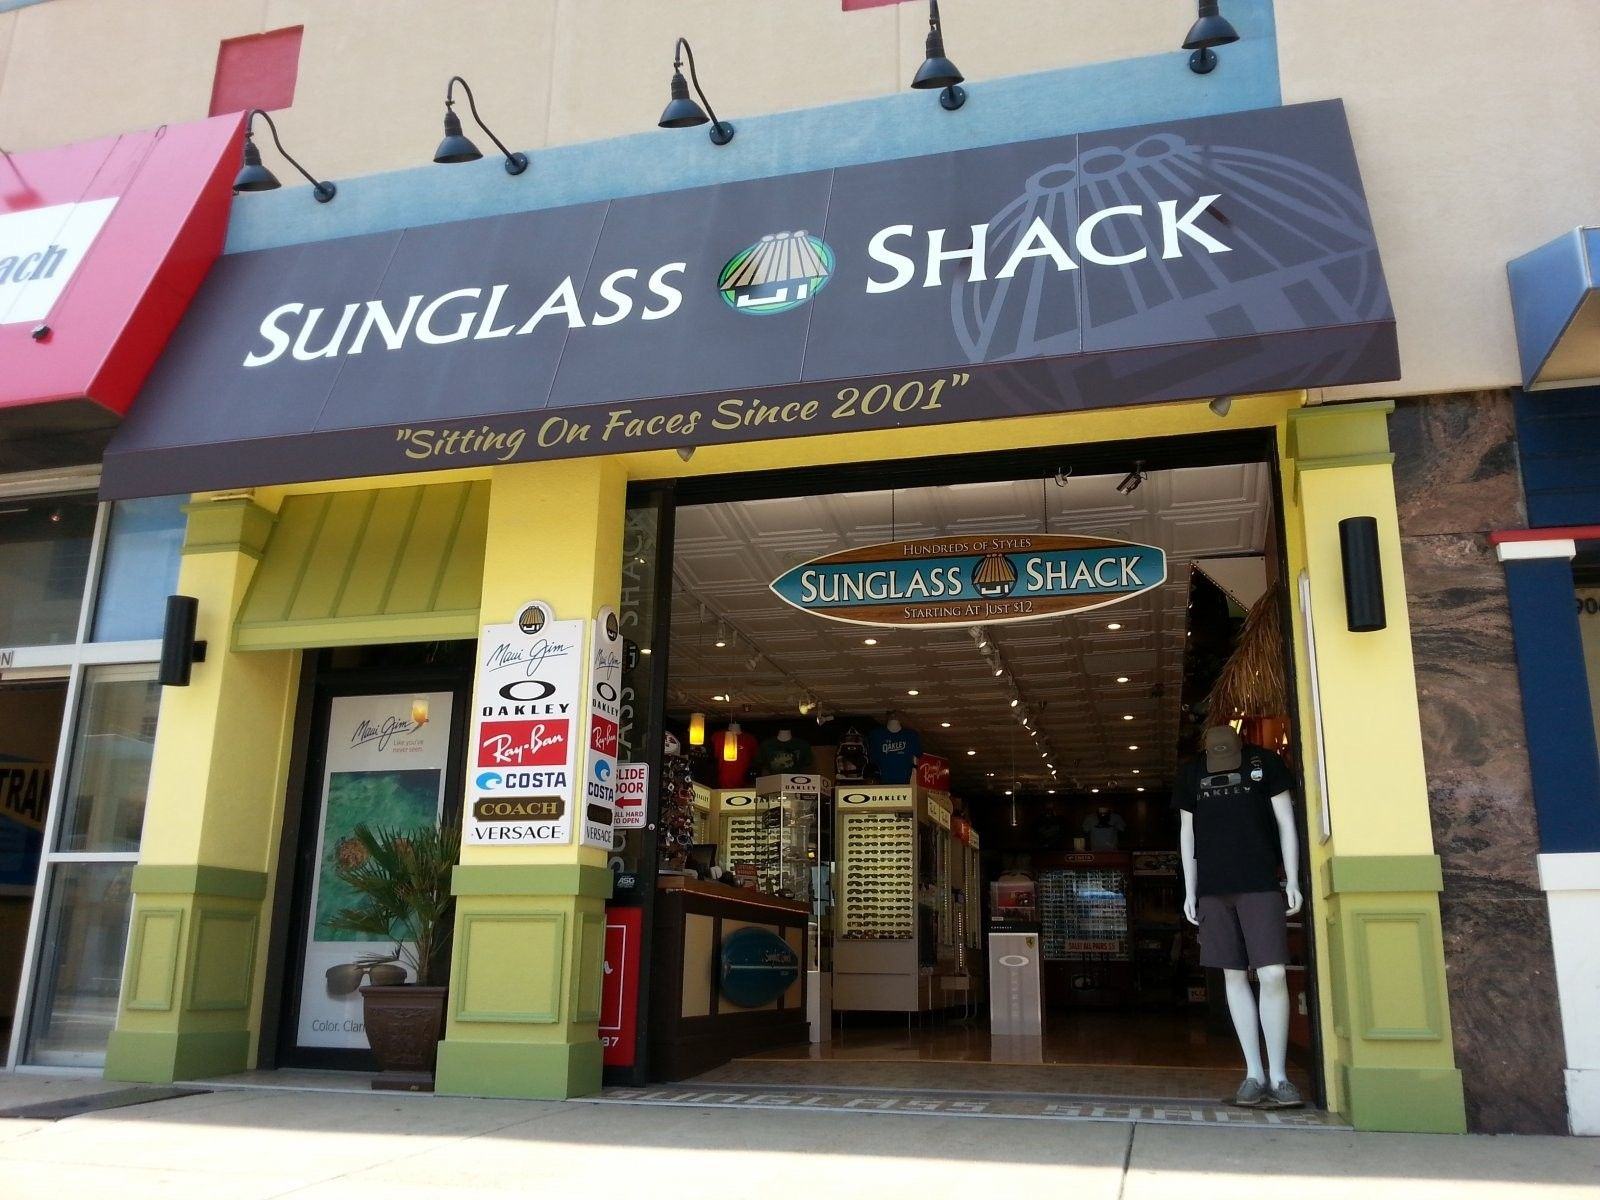 Check Out My Slogan On My New Awning, Lol   ;-) - 2014-05-08 13.00.27.jpg